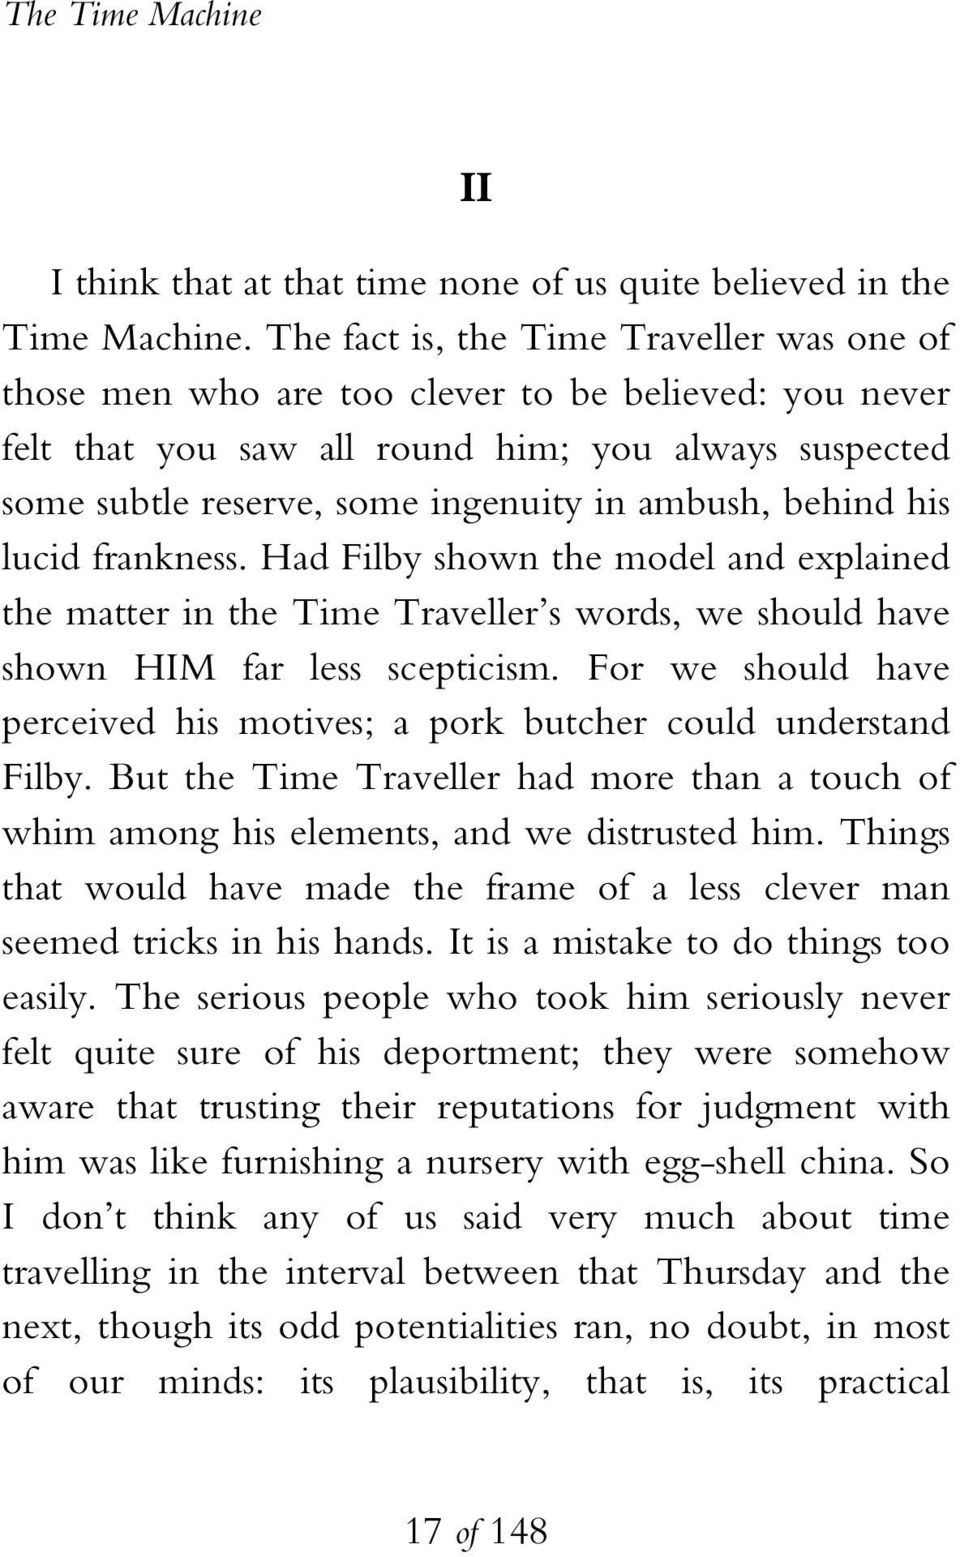 behind his lucid frankness. Had Filby shown the model and explained the matter in the Time Traveller s words, we should have shown HIM far less scepticism.